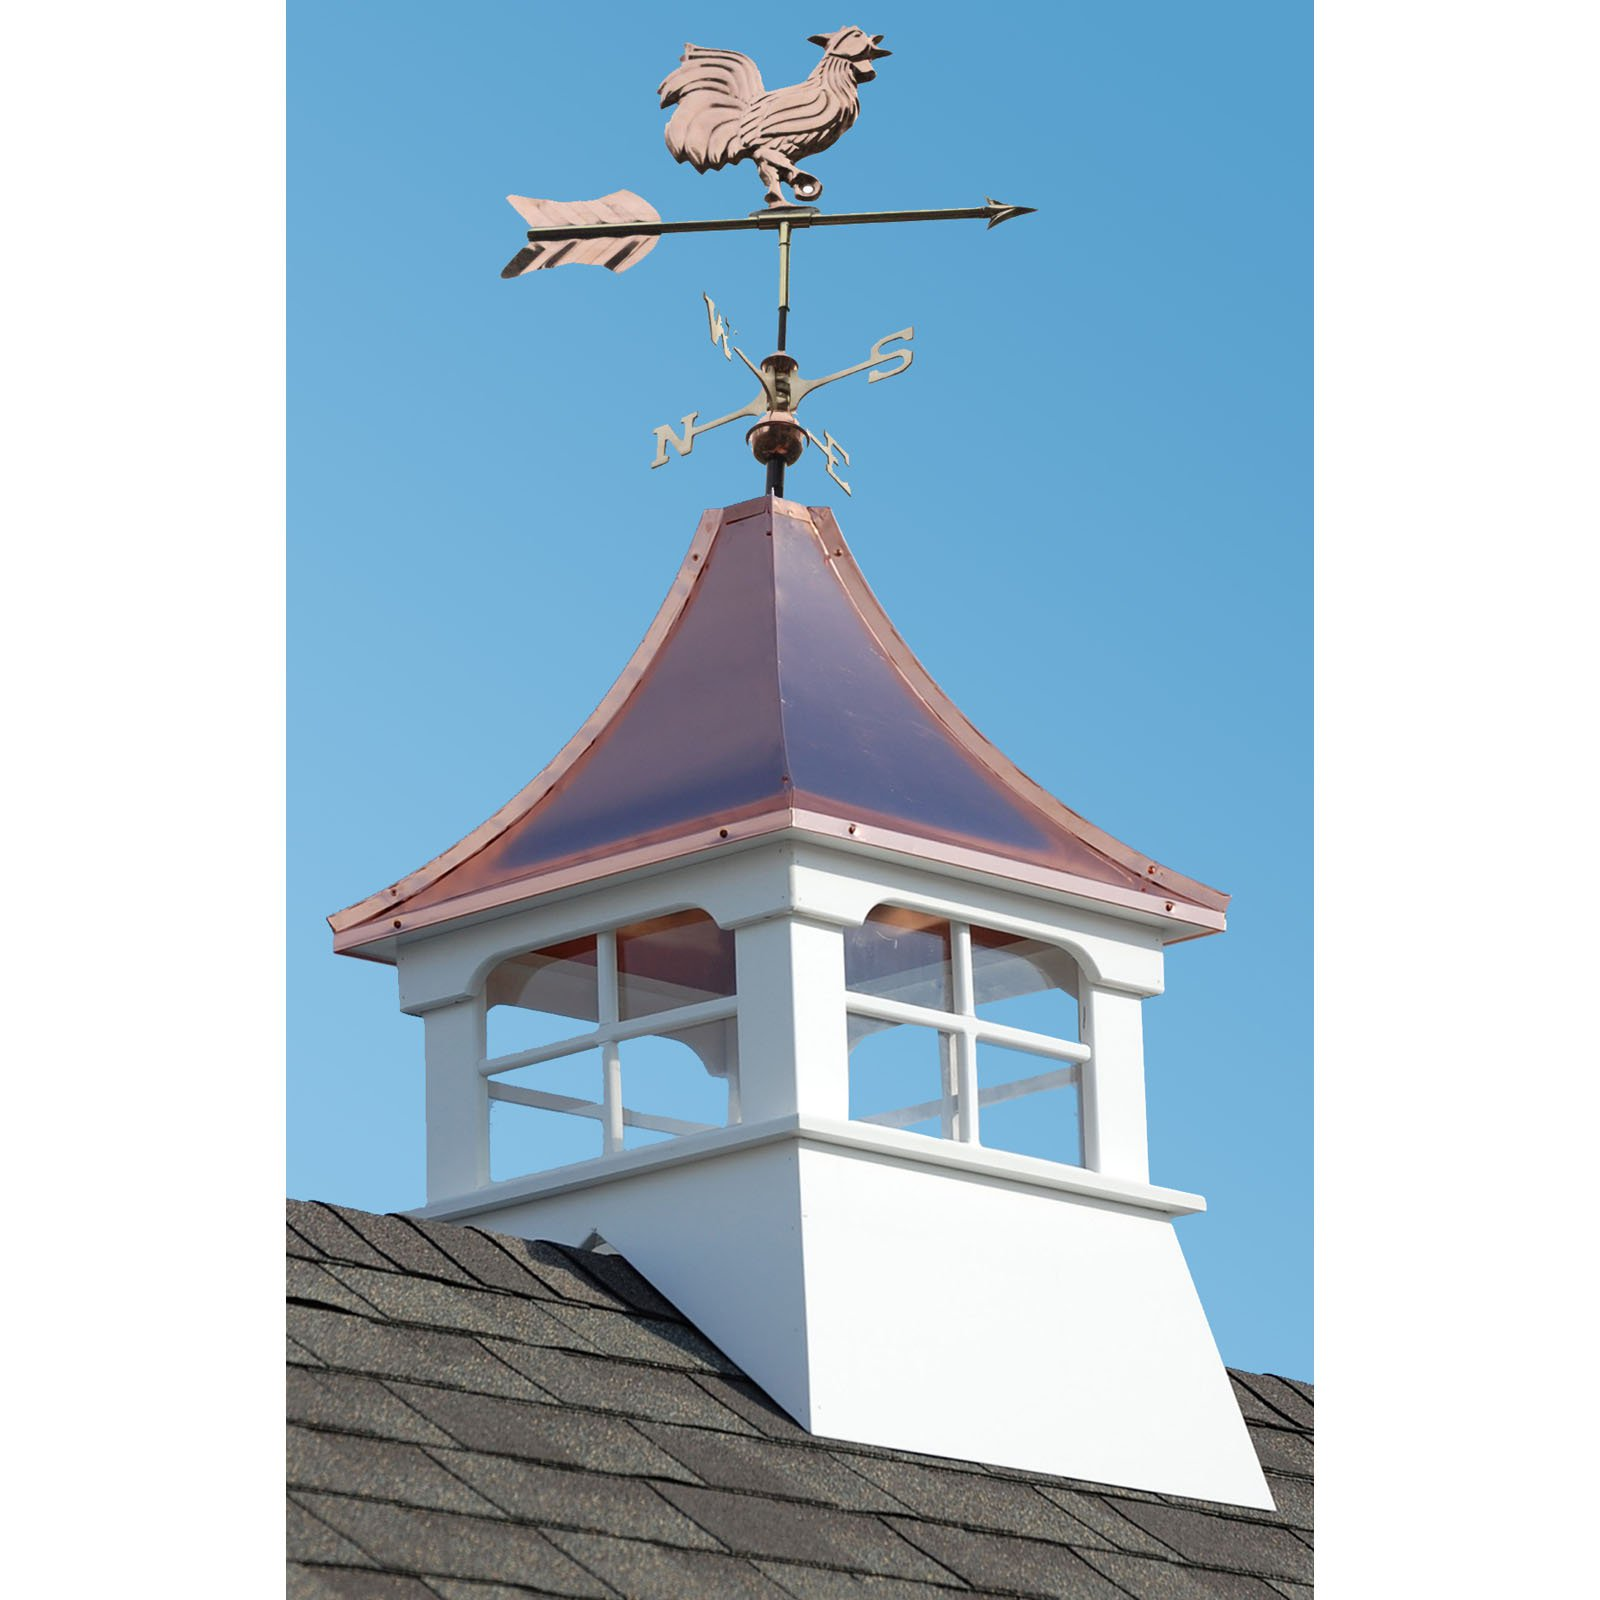 Image of Accentua Charleston Cupola with Rooster Weathervane